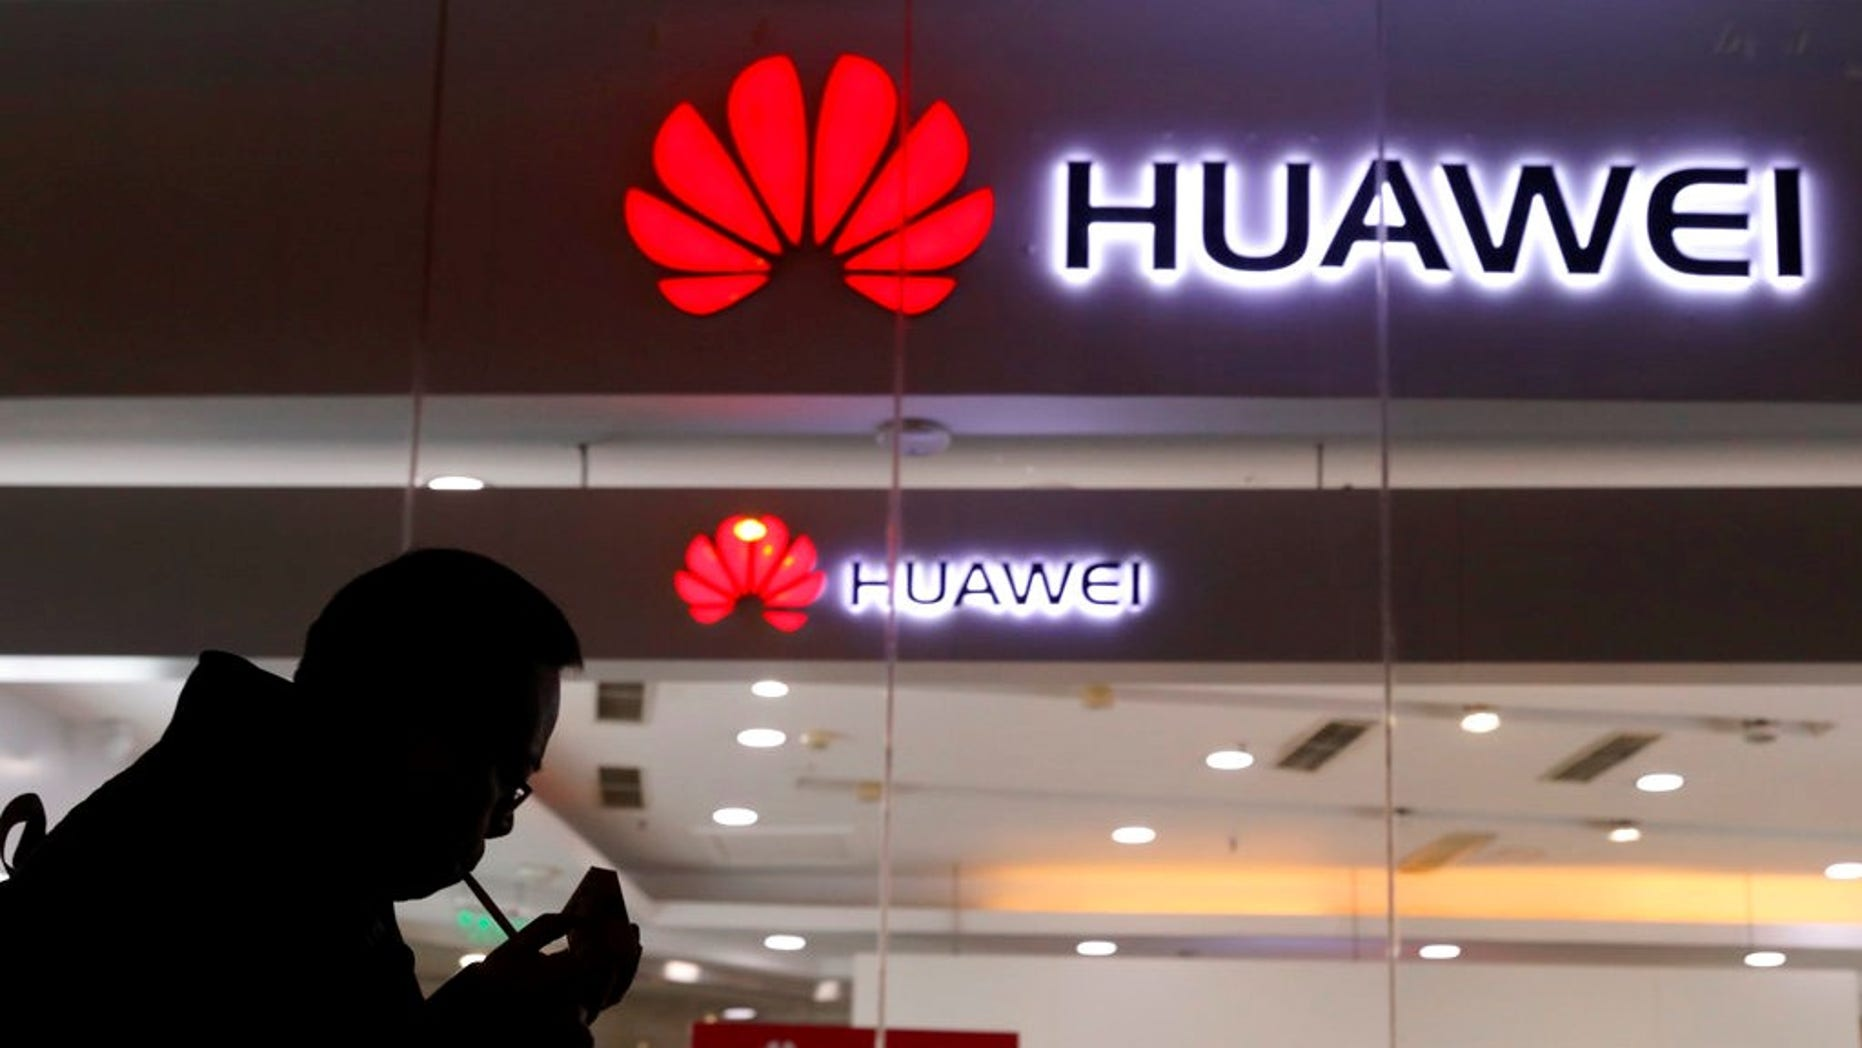 A Huawei employee was arrested in Poland for espionage